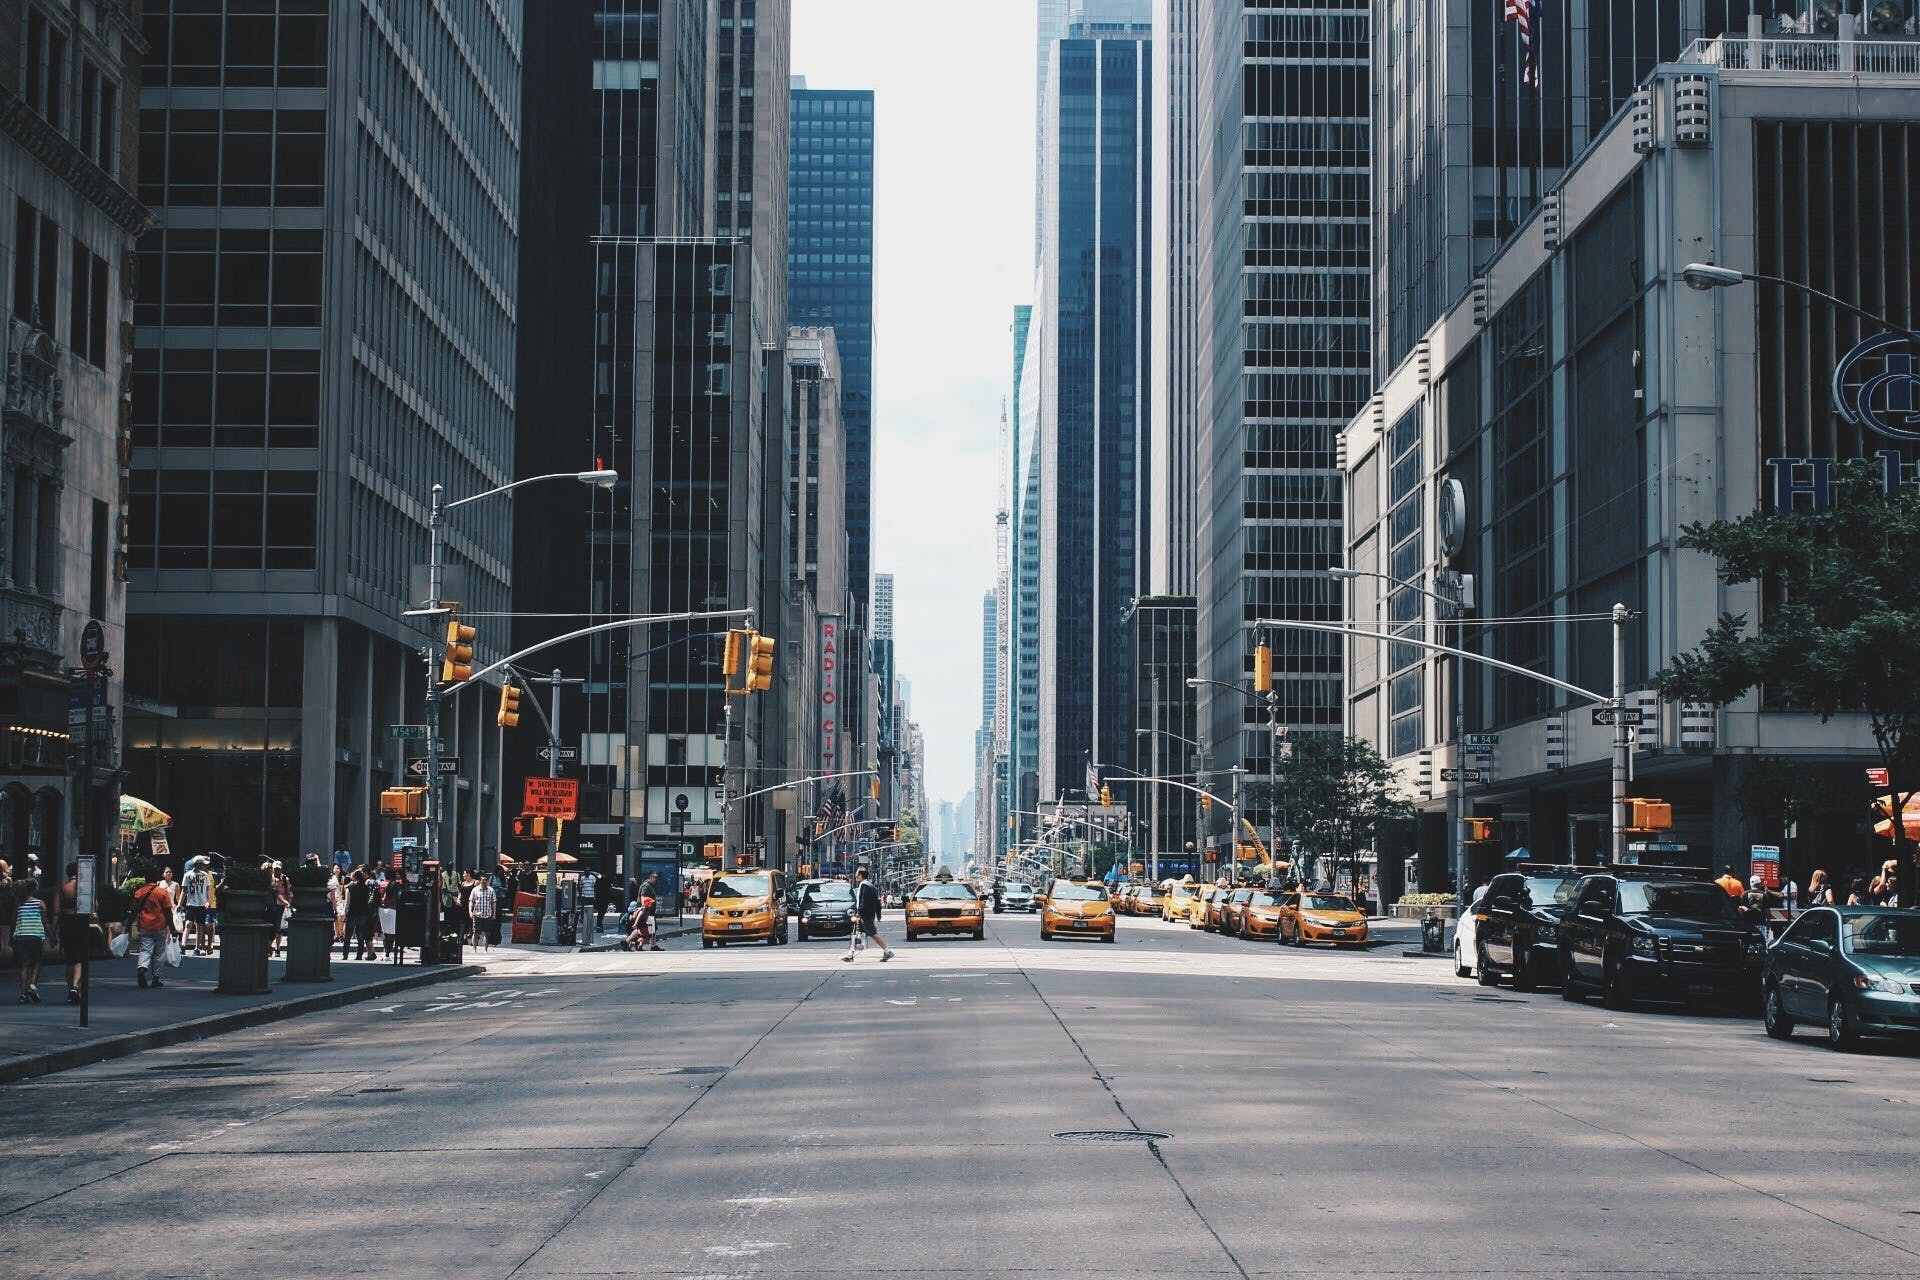 Free stock photo of city, traffic, street, buildings